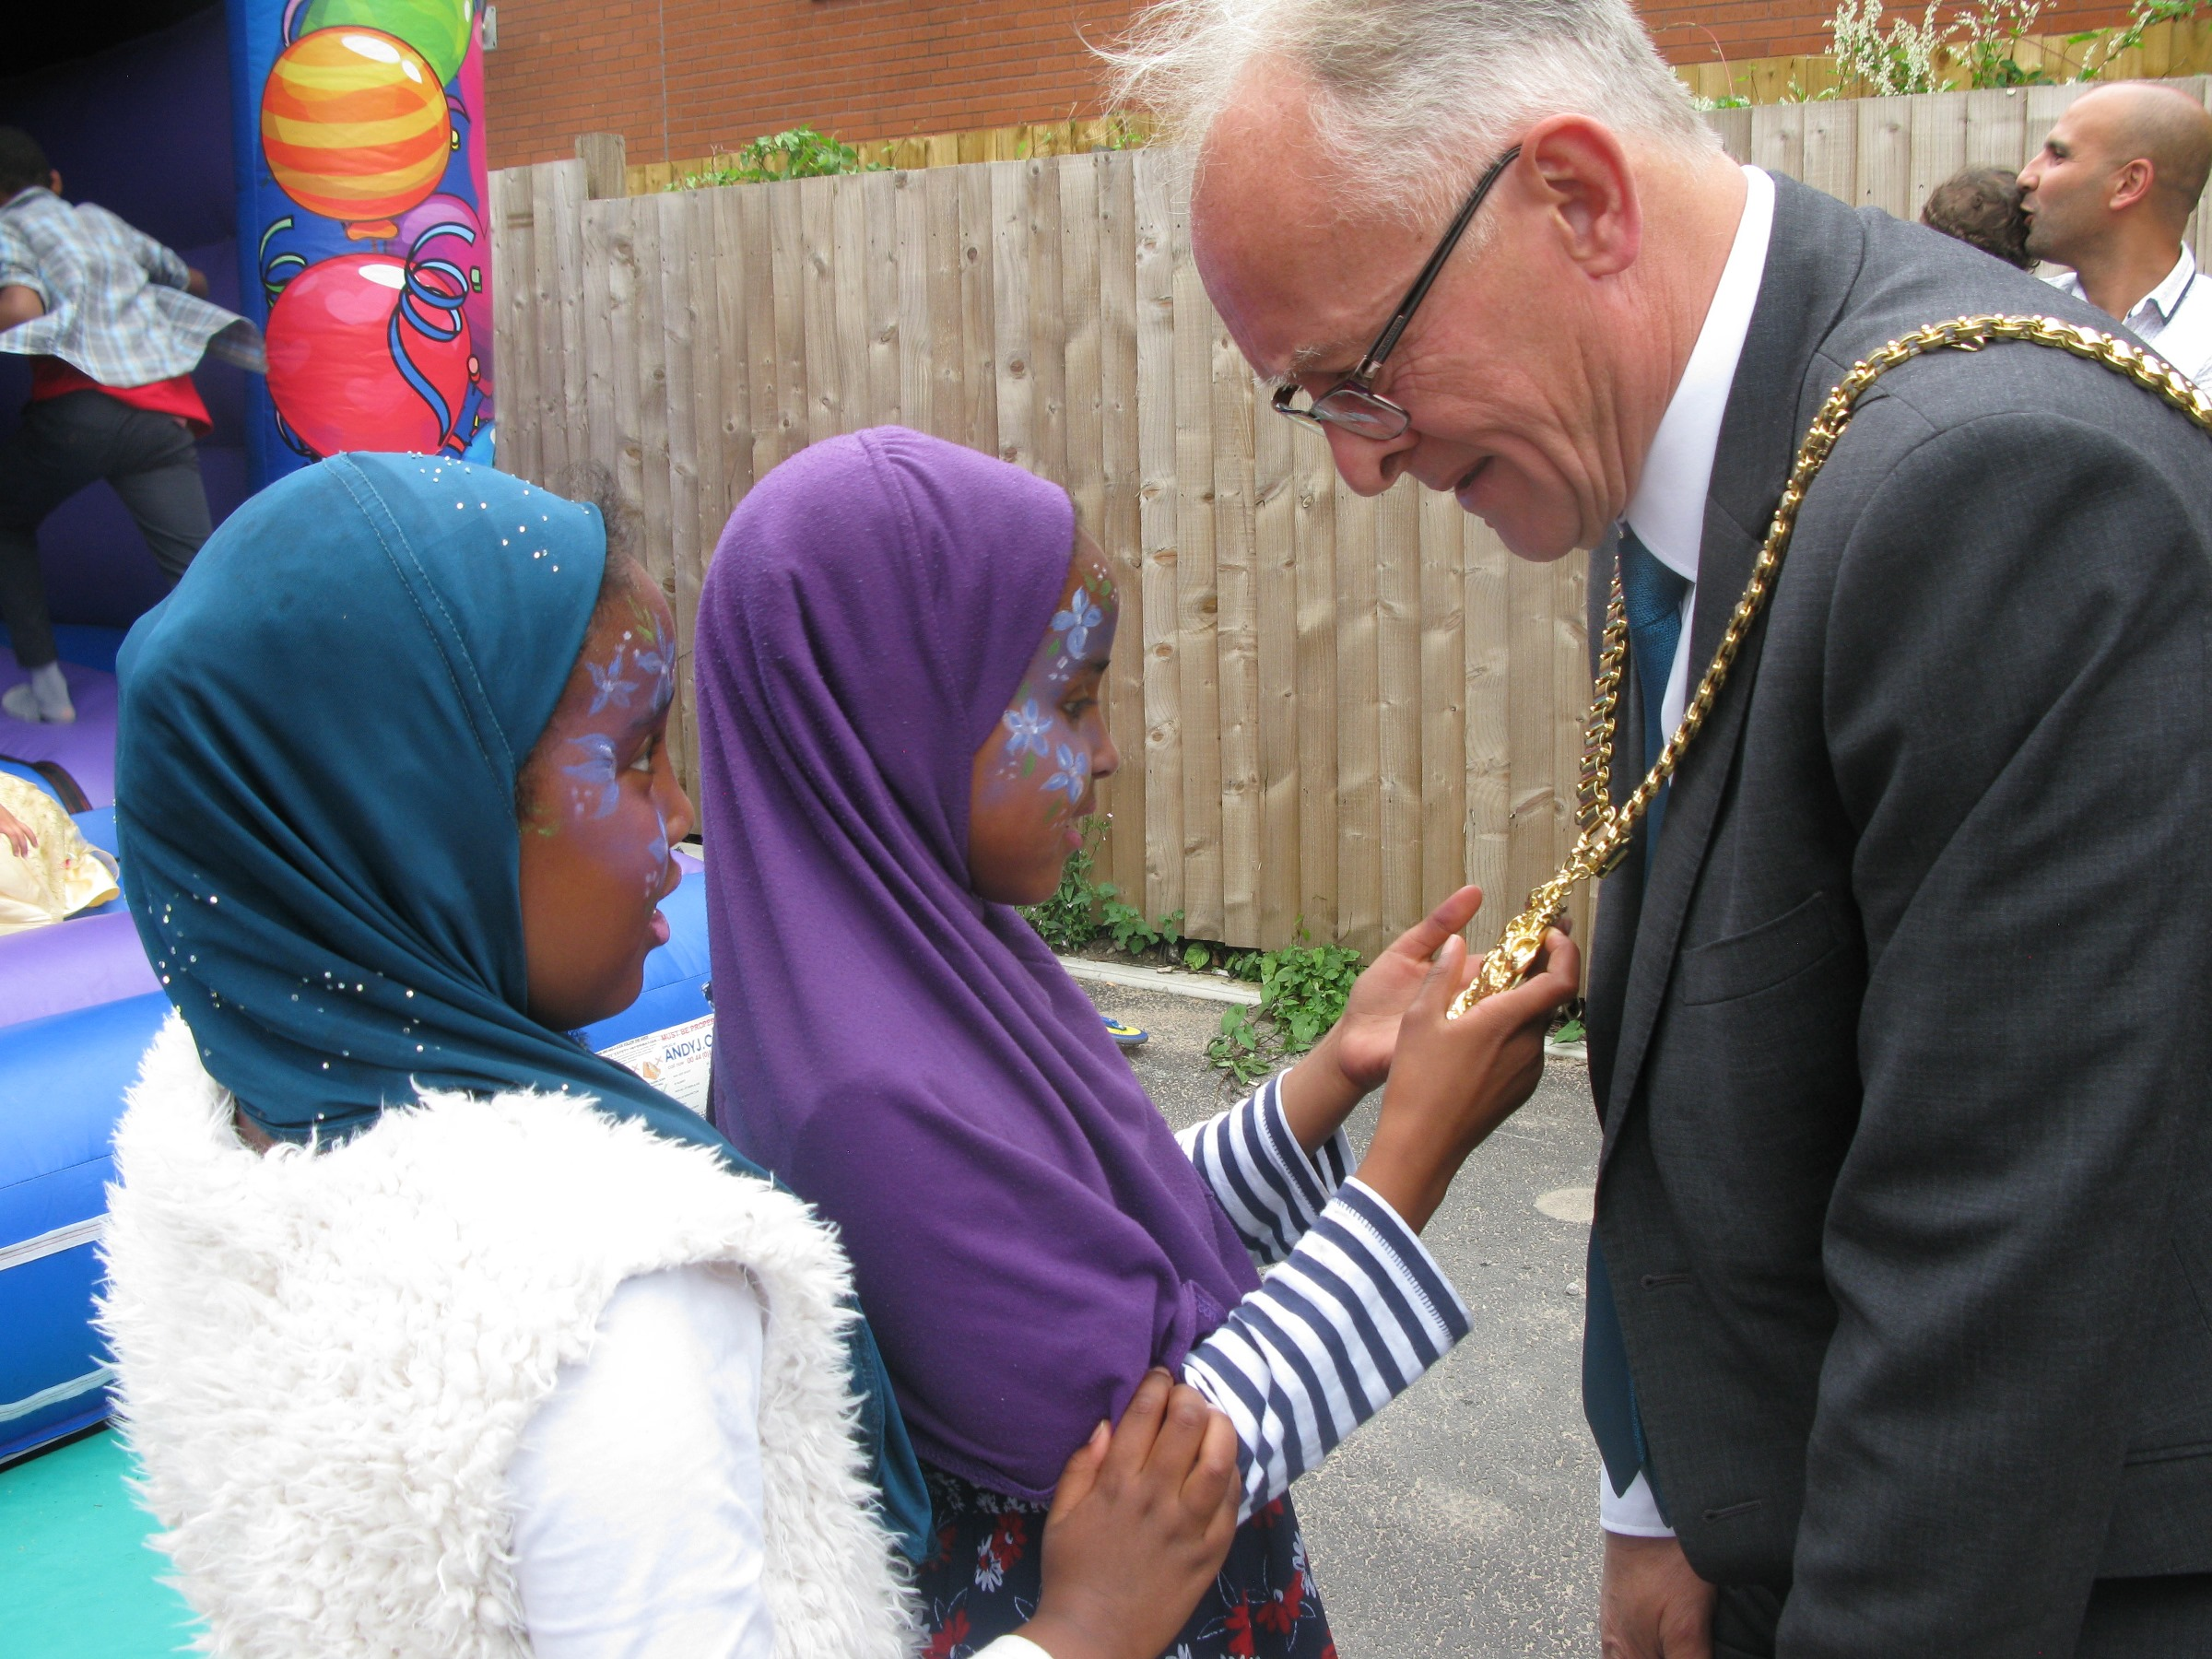 Marwah and Aaliyah check out the Lord Mayor's chains.